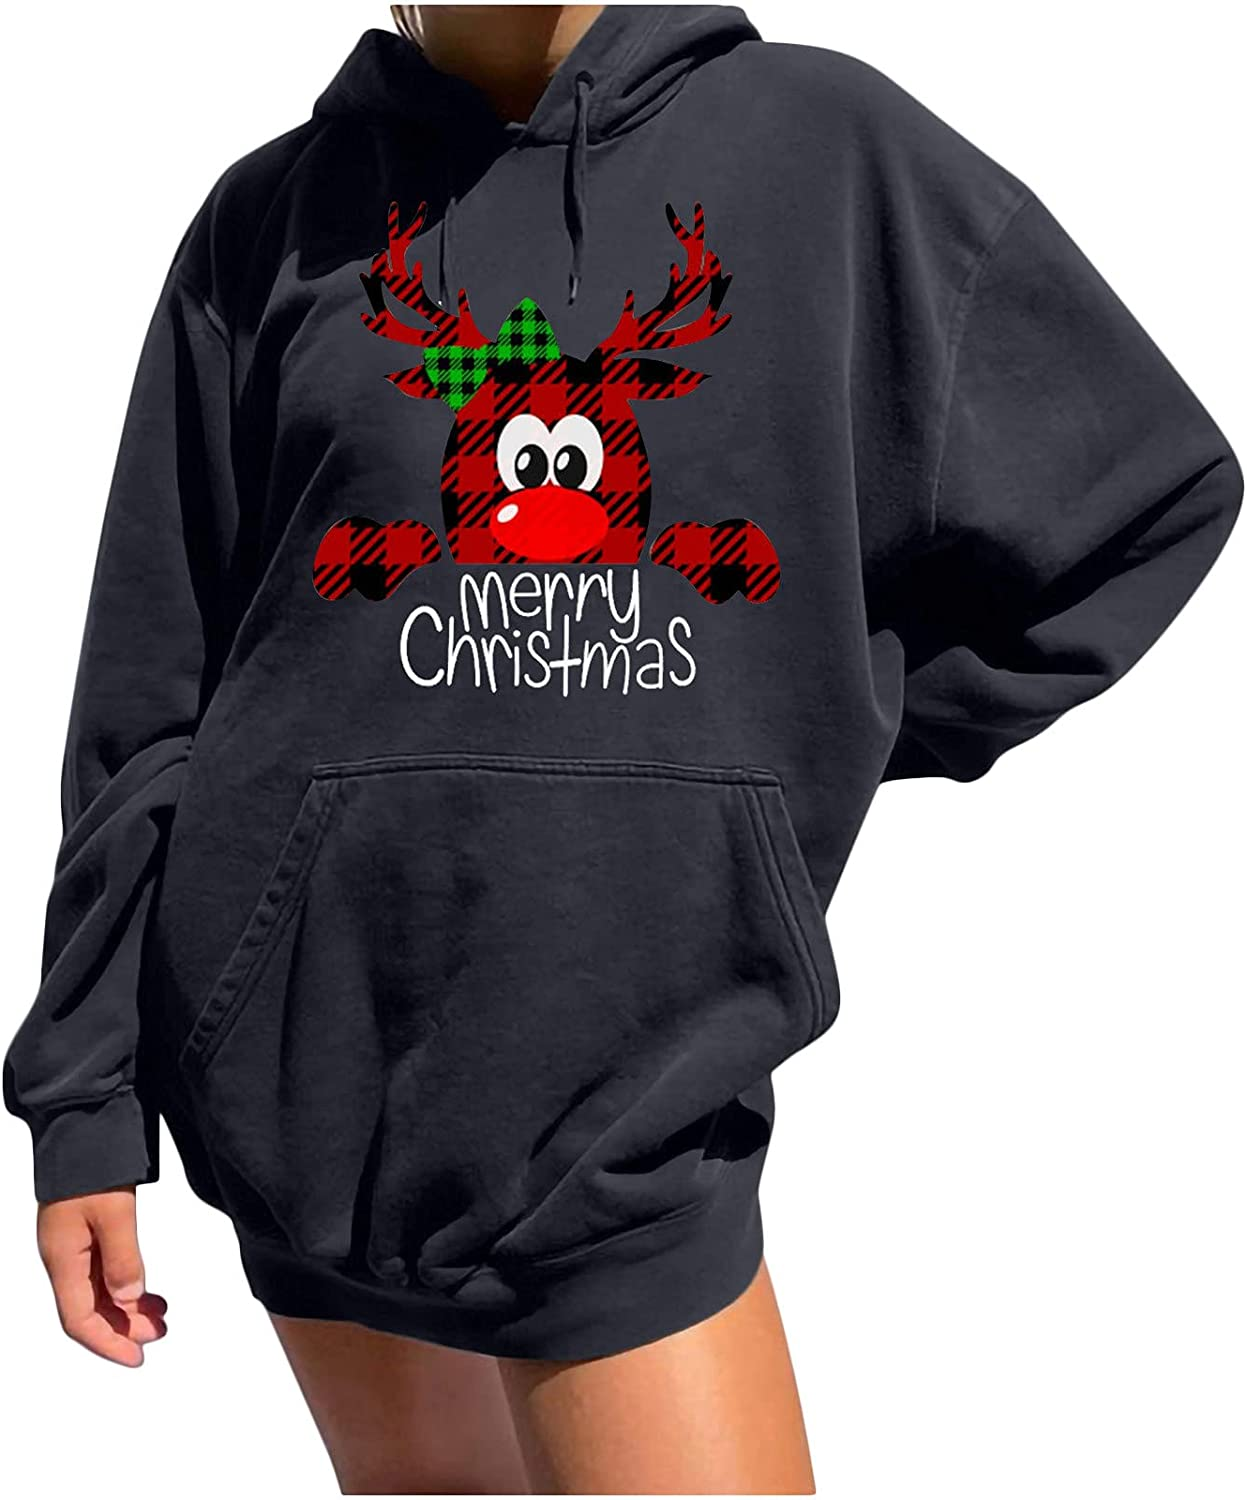 Women Casual Hooded Sweatshirt Christmas Long Sleeve Spring new work one after another Import Printing Ho